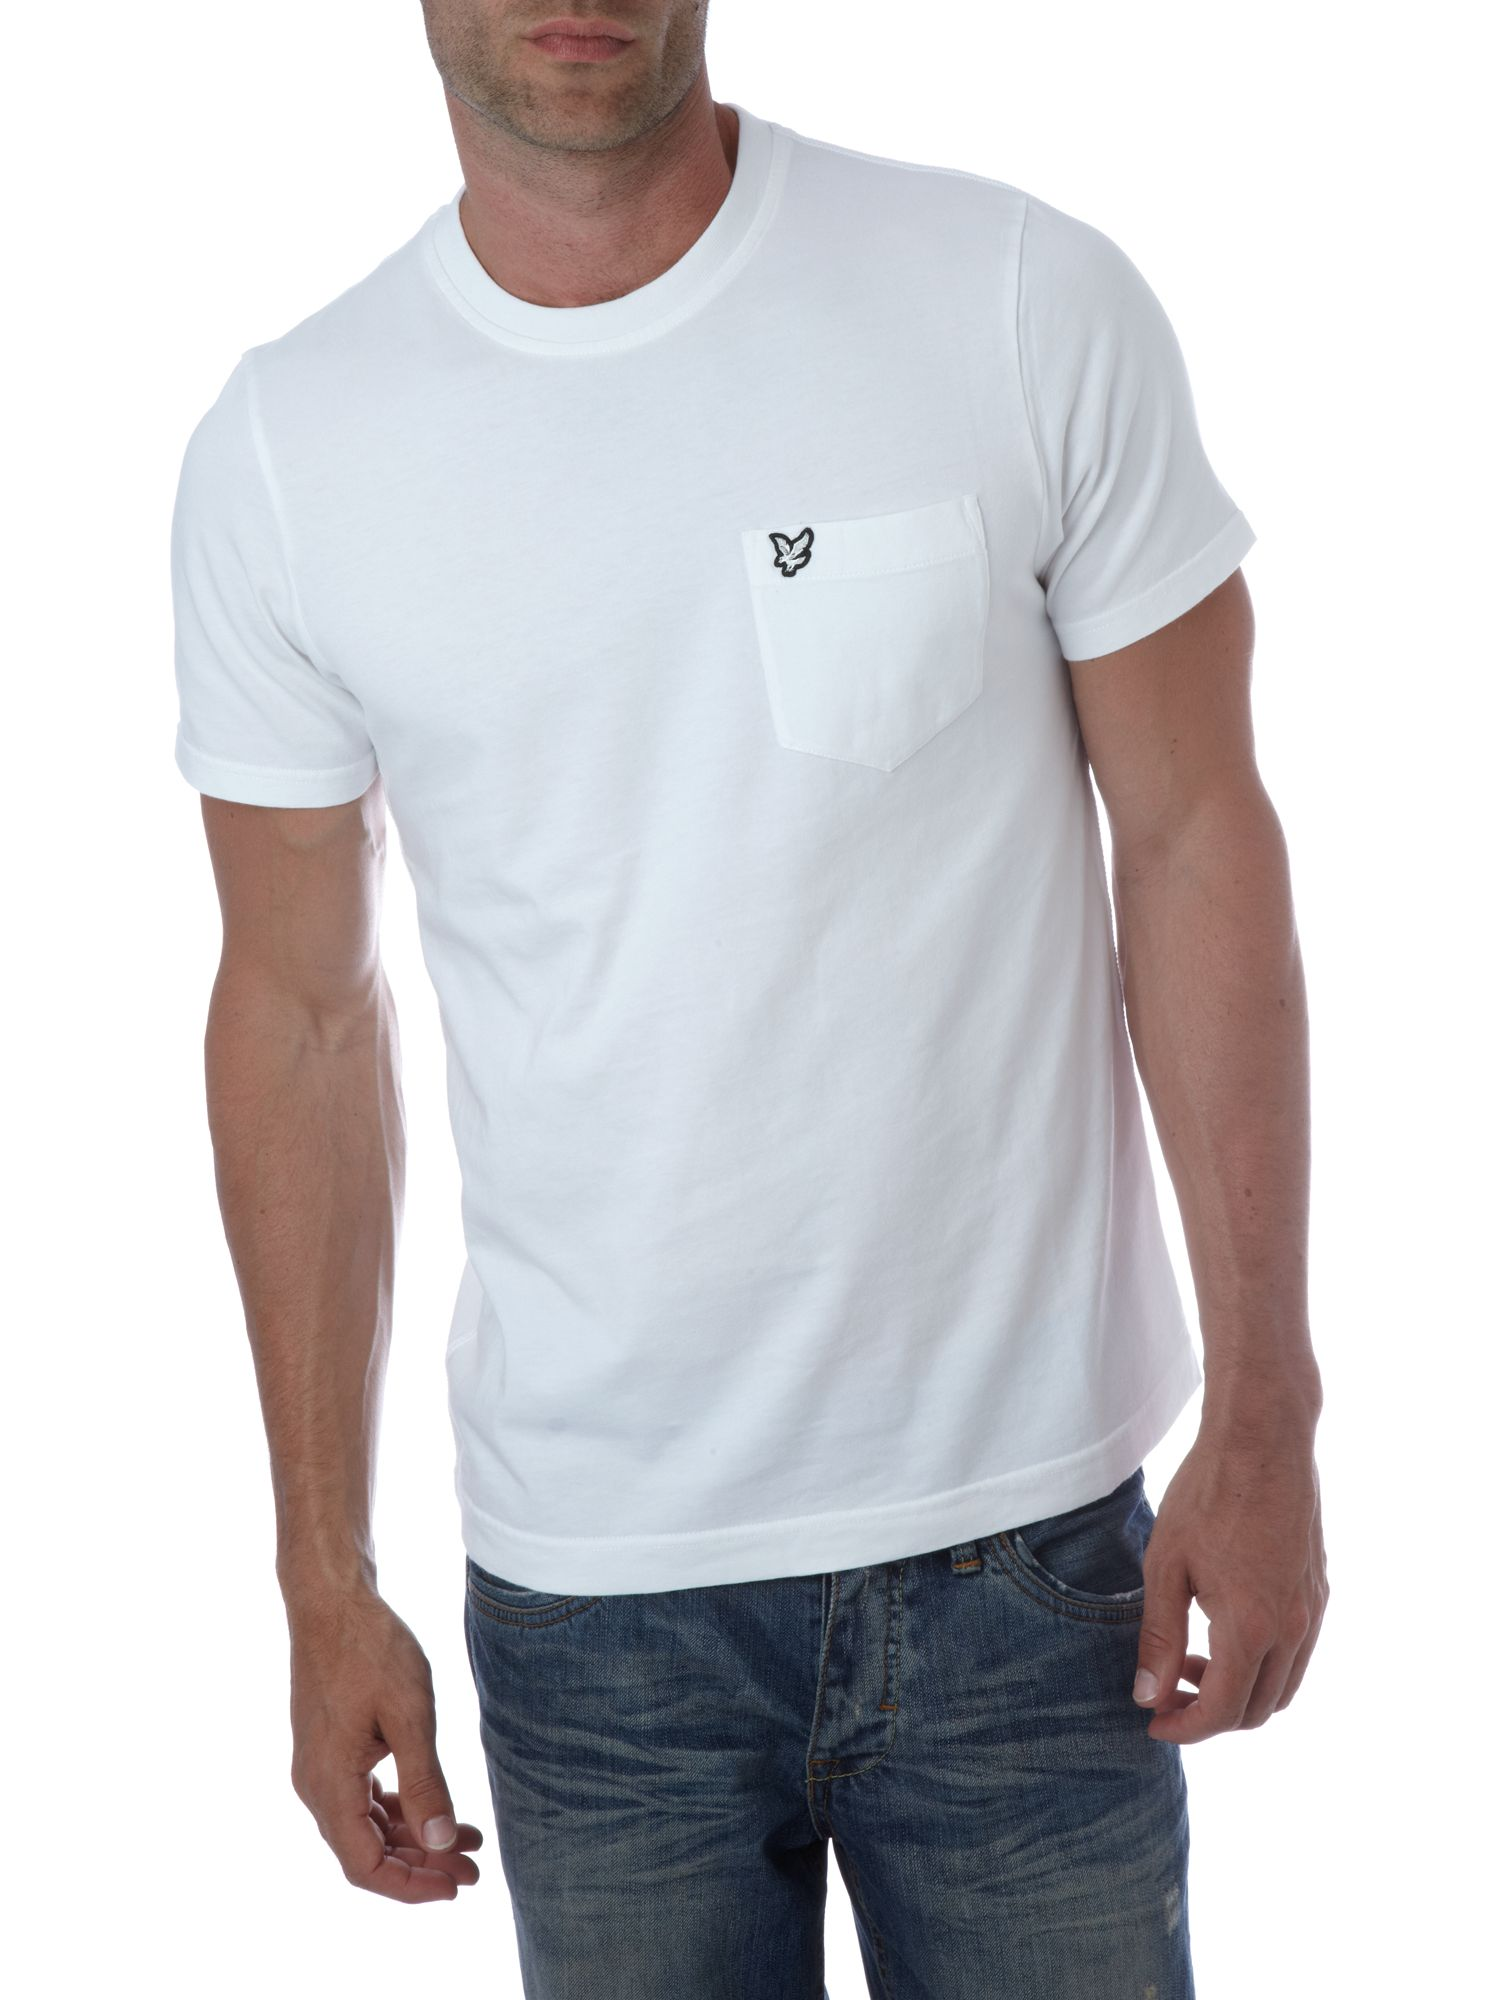 Lyle & Scott One pocket T-shirt - Grey XXL,L,M,XL,S product image